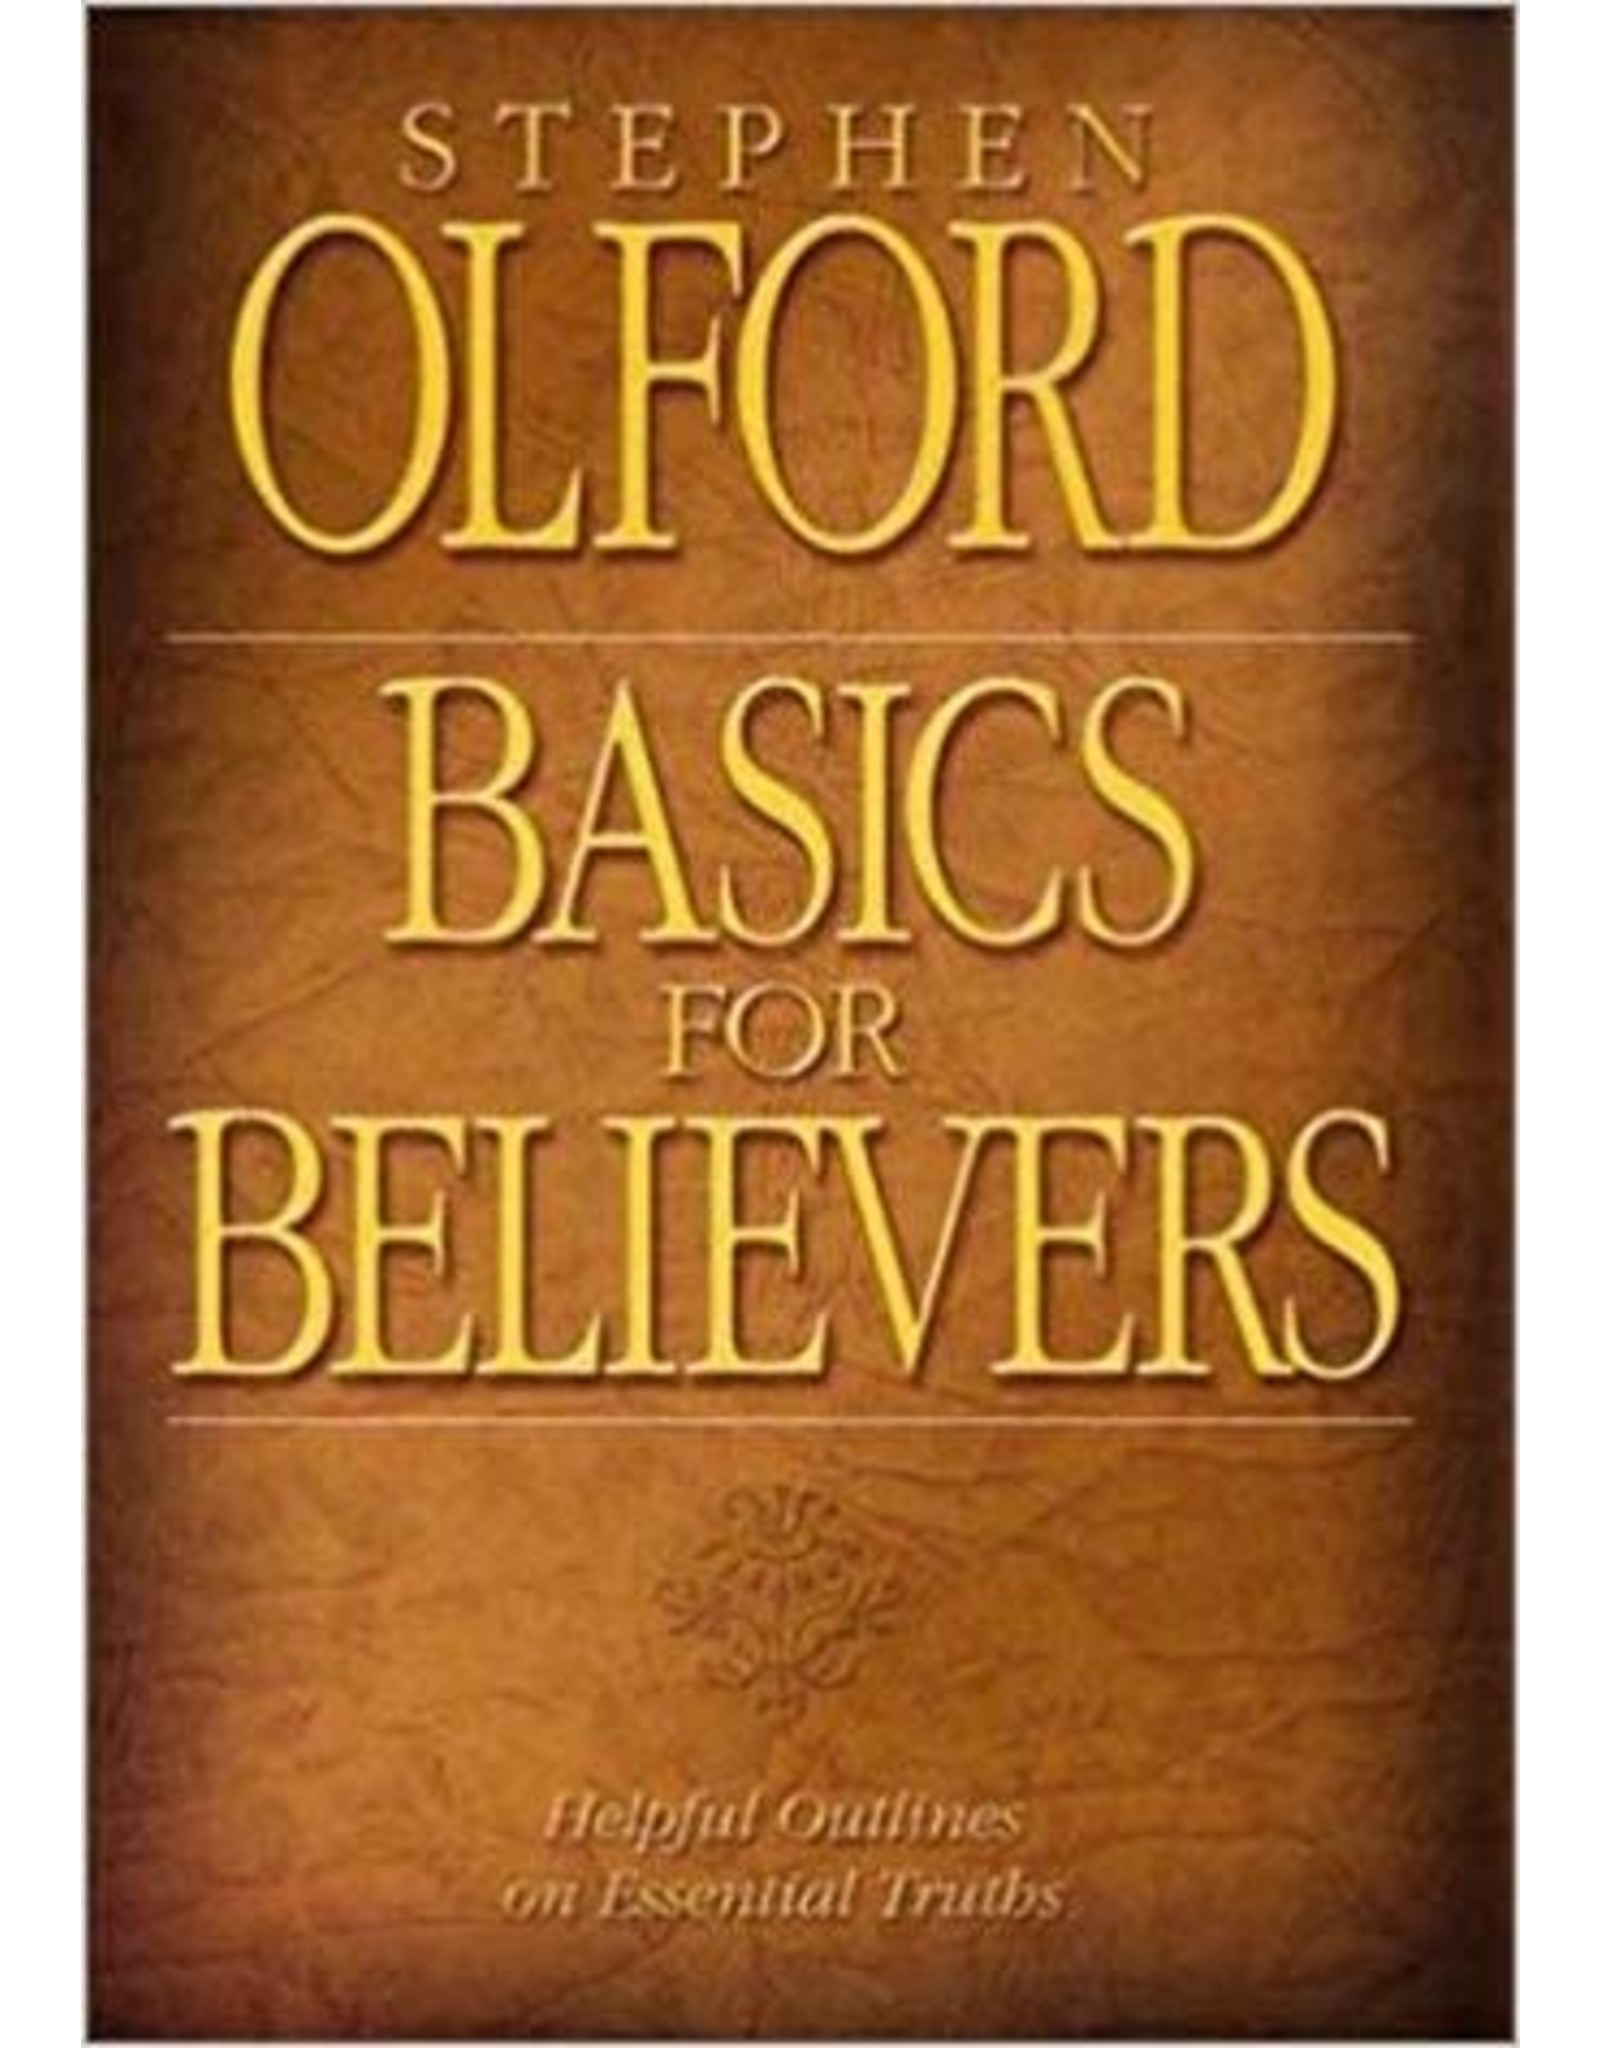 Olford Basics for Believers